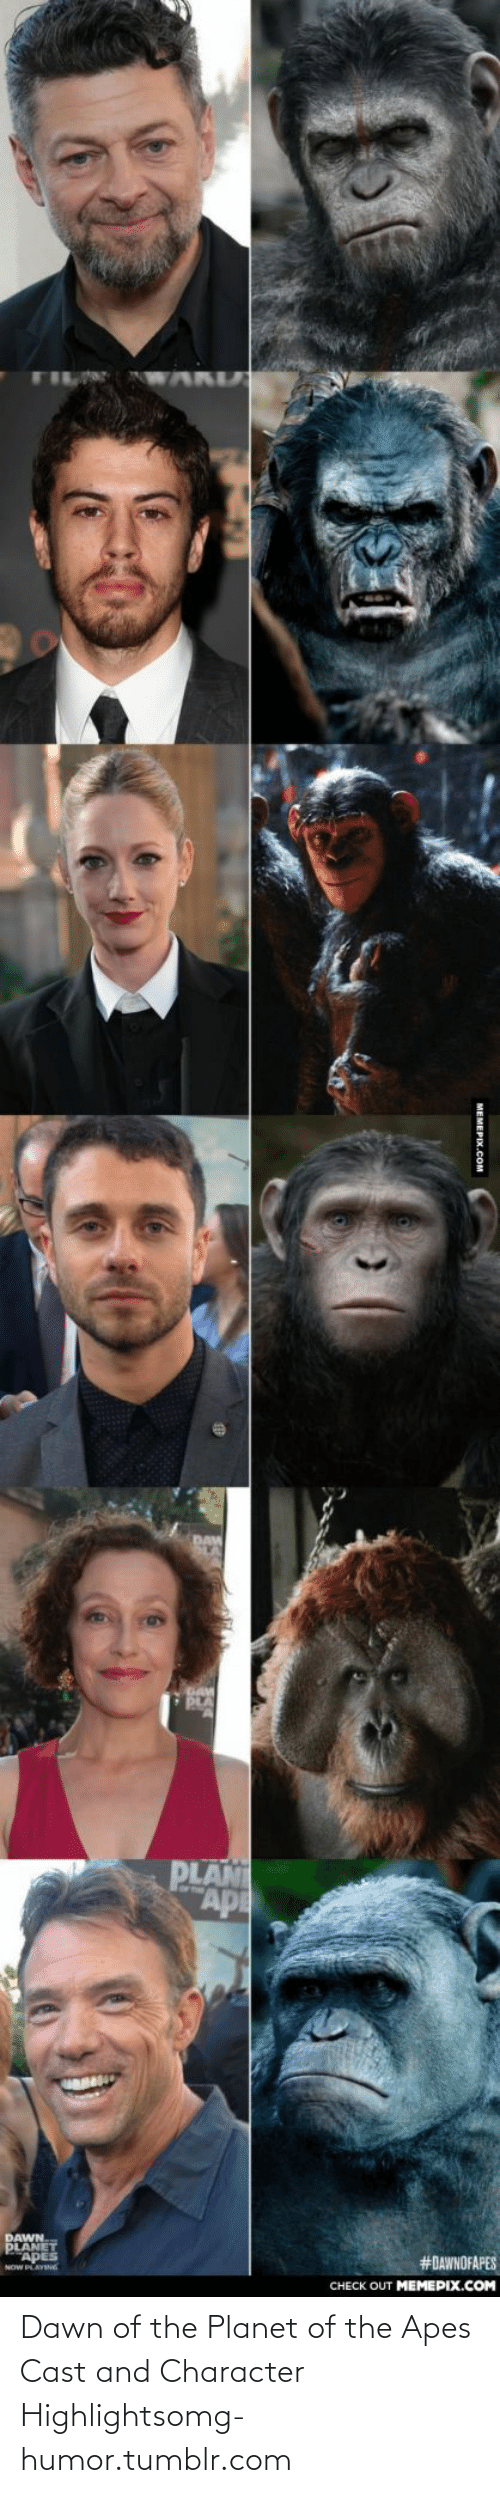 dawn of the planet of the apes: PLAN  ГAp  DAWN  PLANET  APES  NOW PLAVING  #DAWNOFAPES  CHECK OUT MEMEPIX.COM  MEMEPIX.COM Dawn of the Planet of the Apes Cast and Character Highlightsomg-humor.tumblr.com